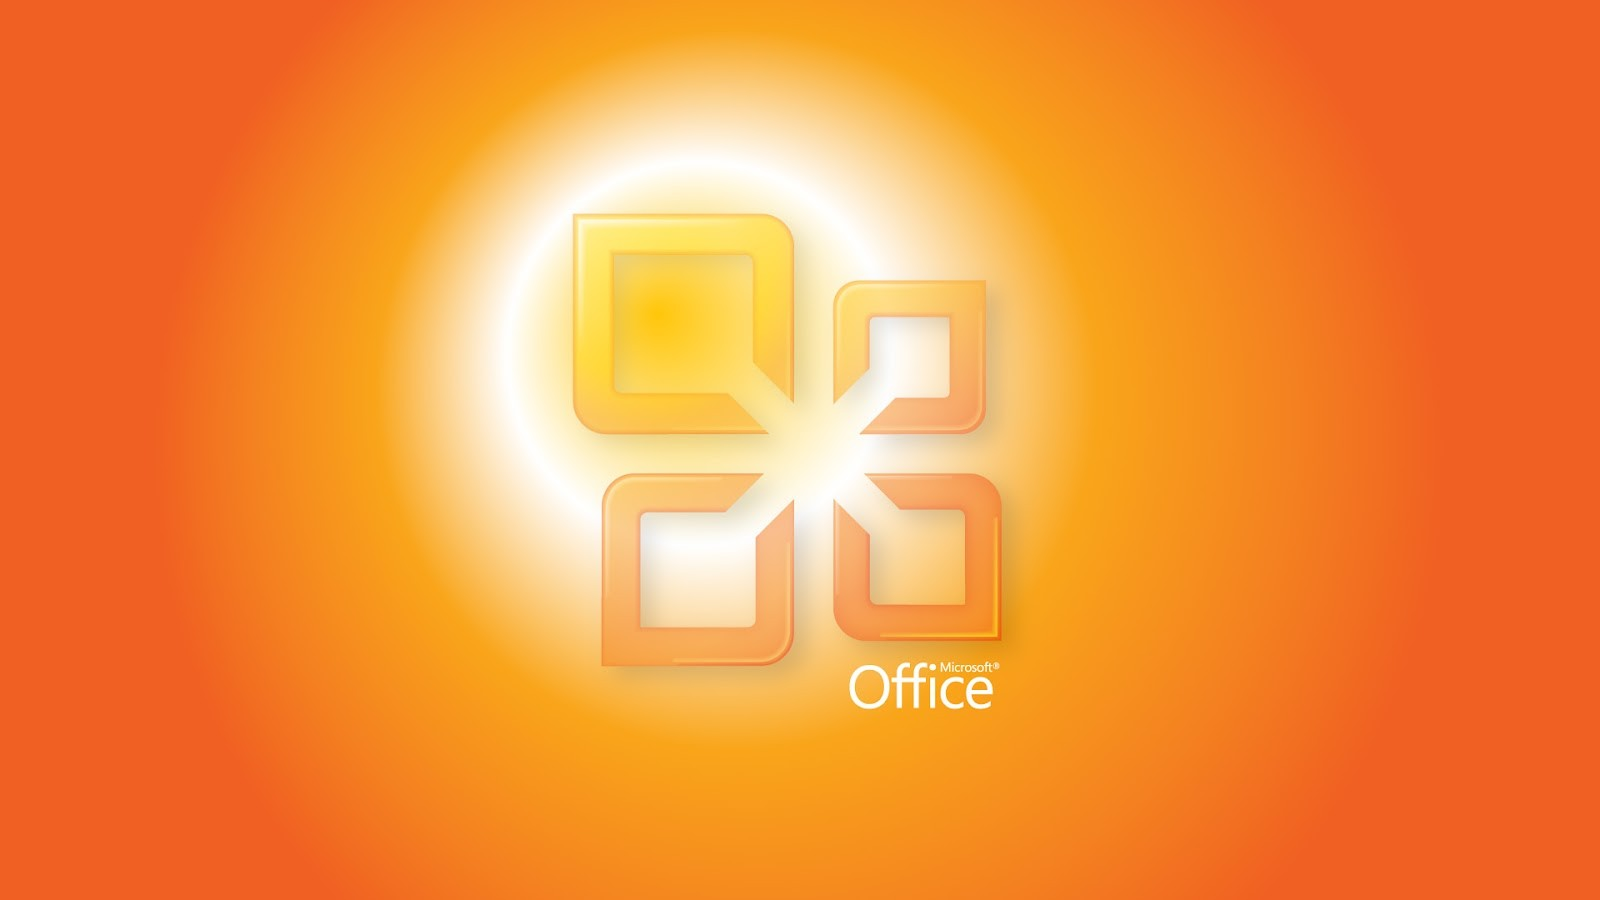 Office Continues To Be The Number One Cash Cow For Microsoft